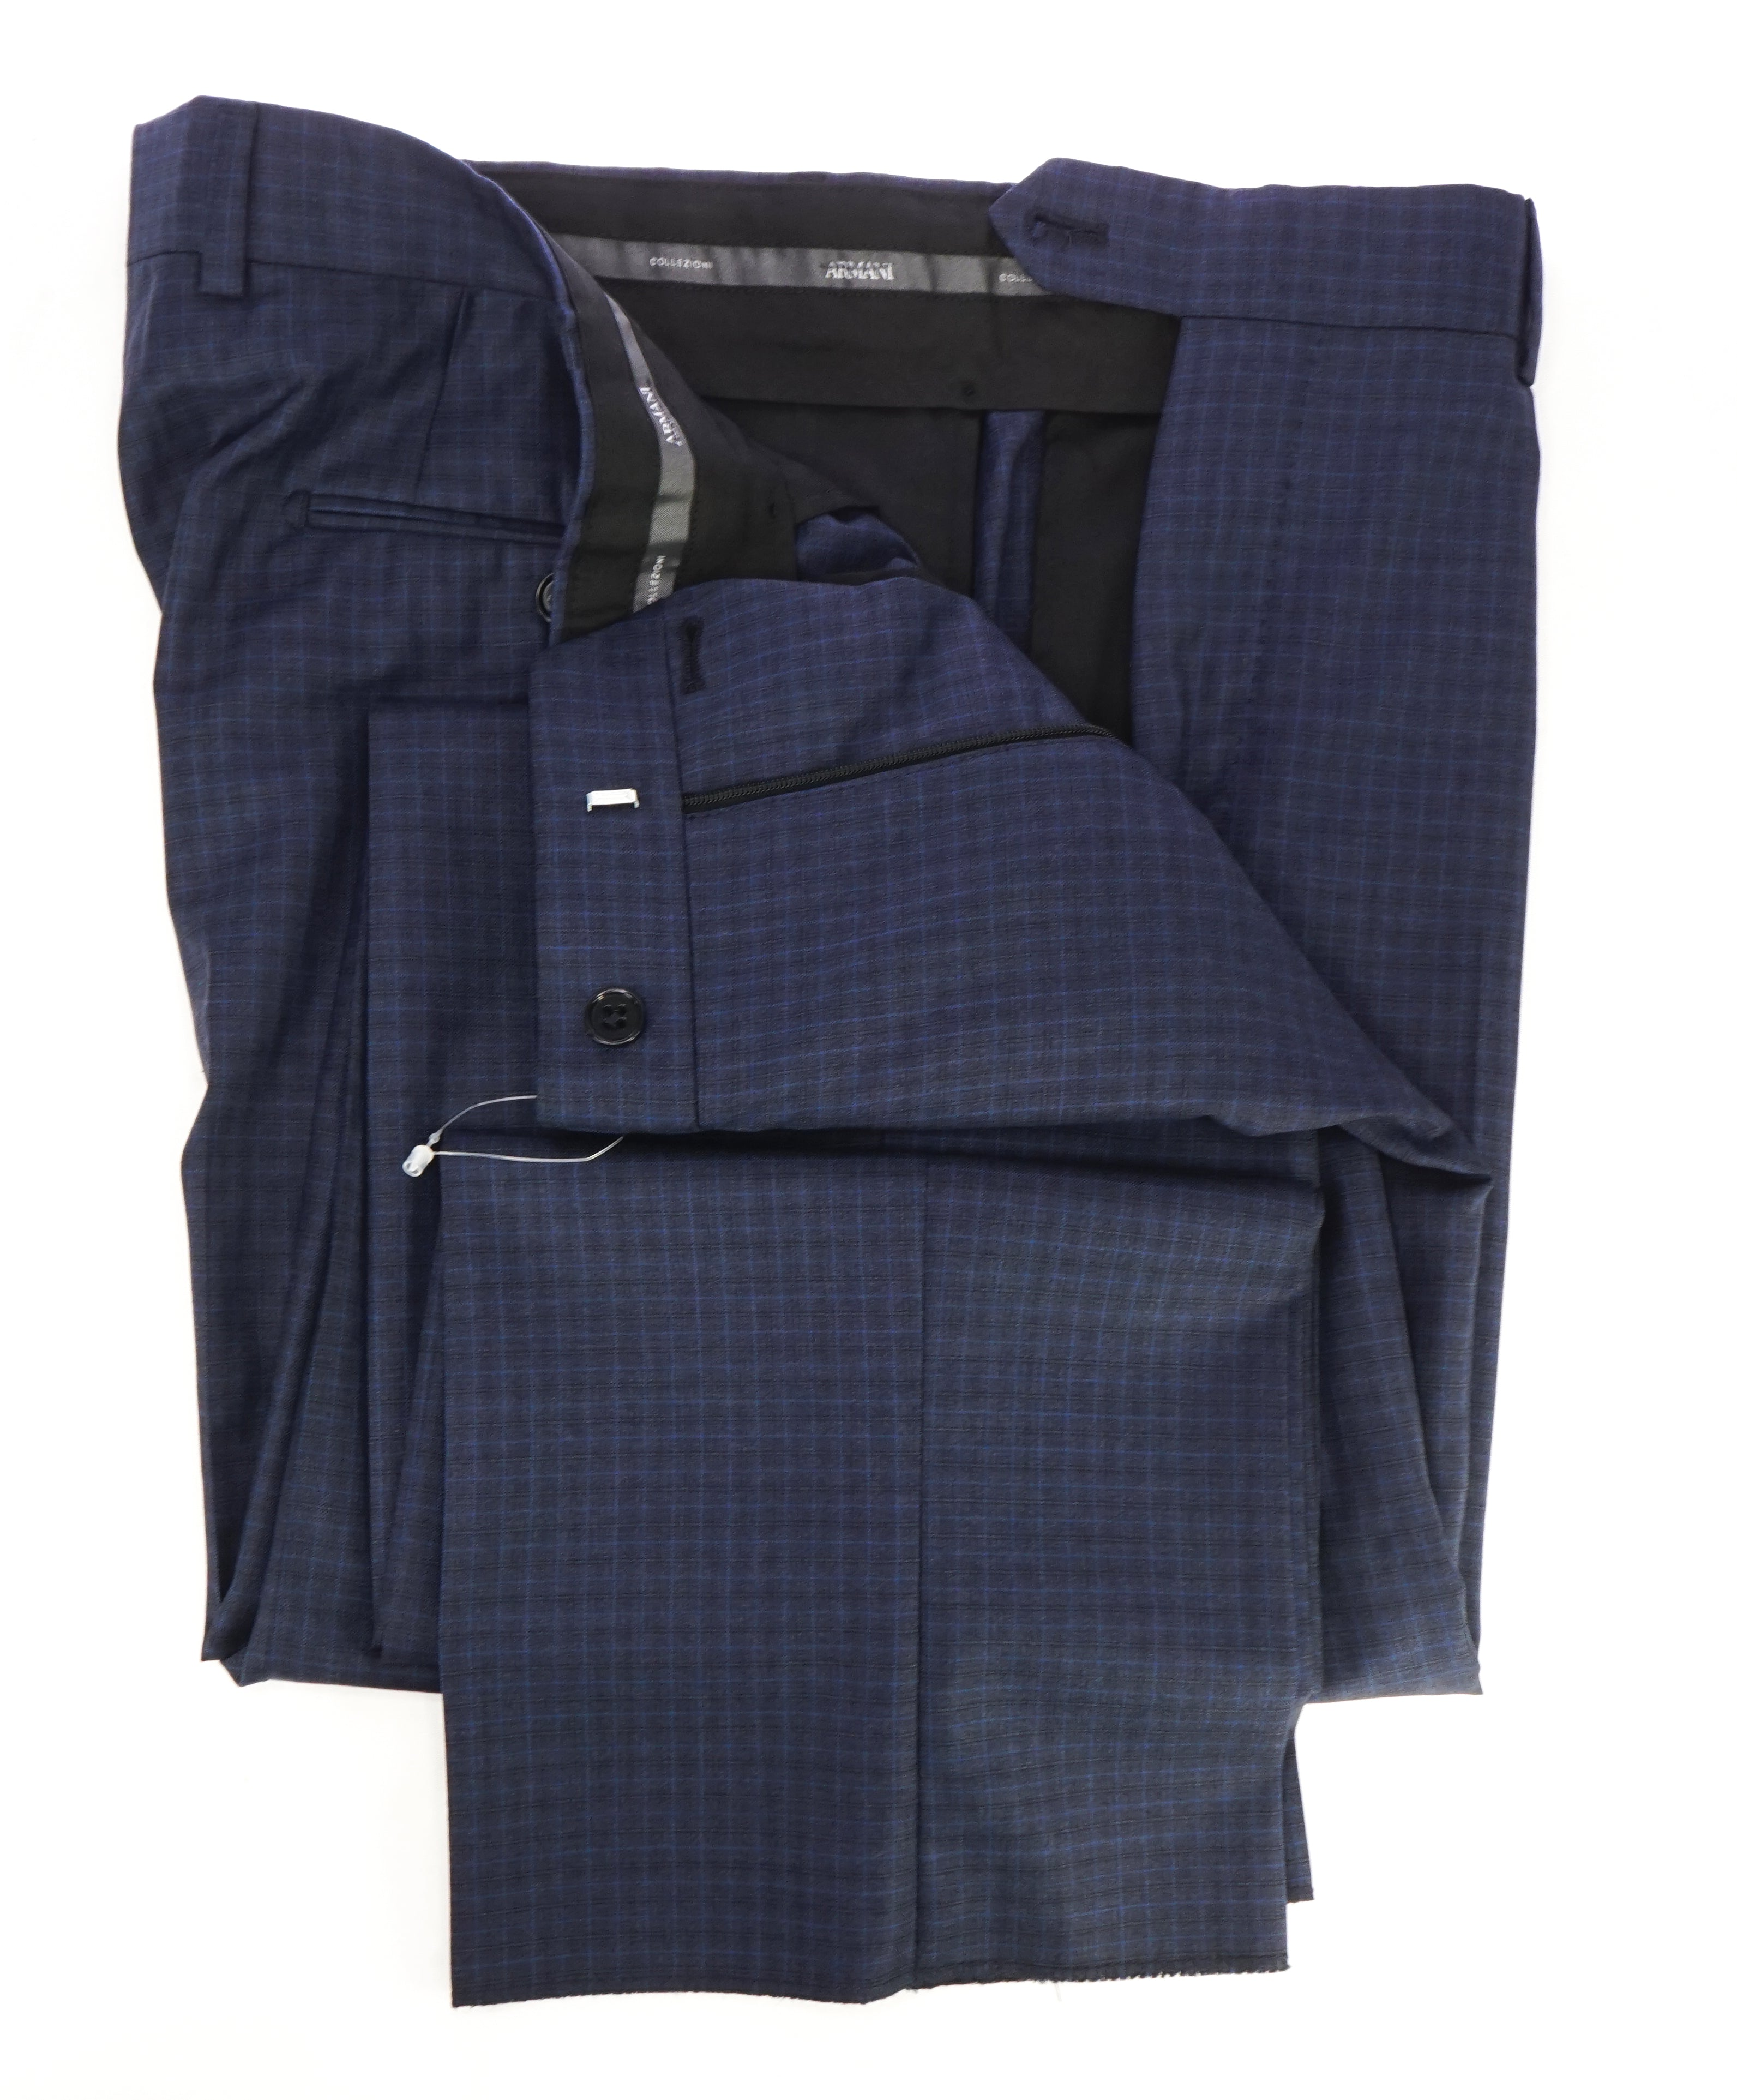 ARMANI COLLEZIONI - Blue Bold Micro Check Plaid Flat Front Dress Pants - 36W